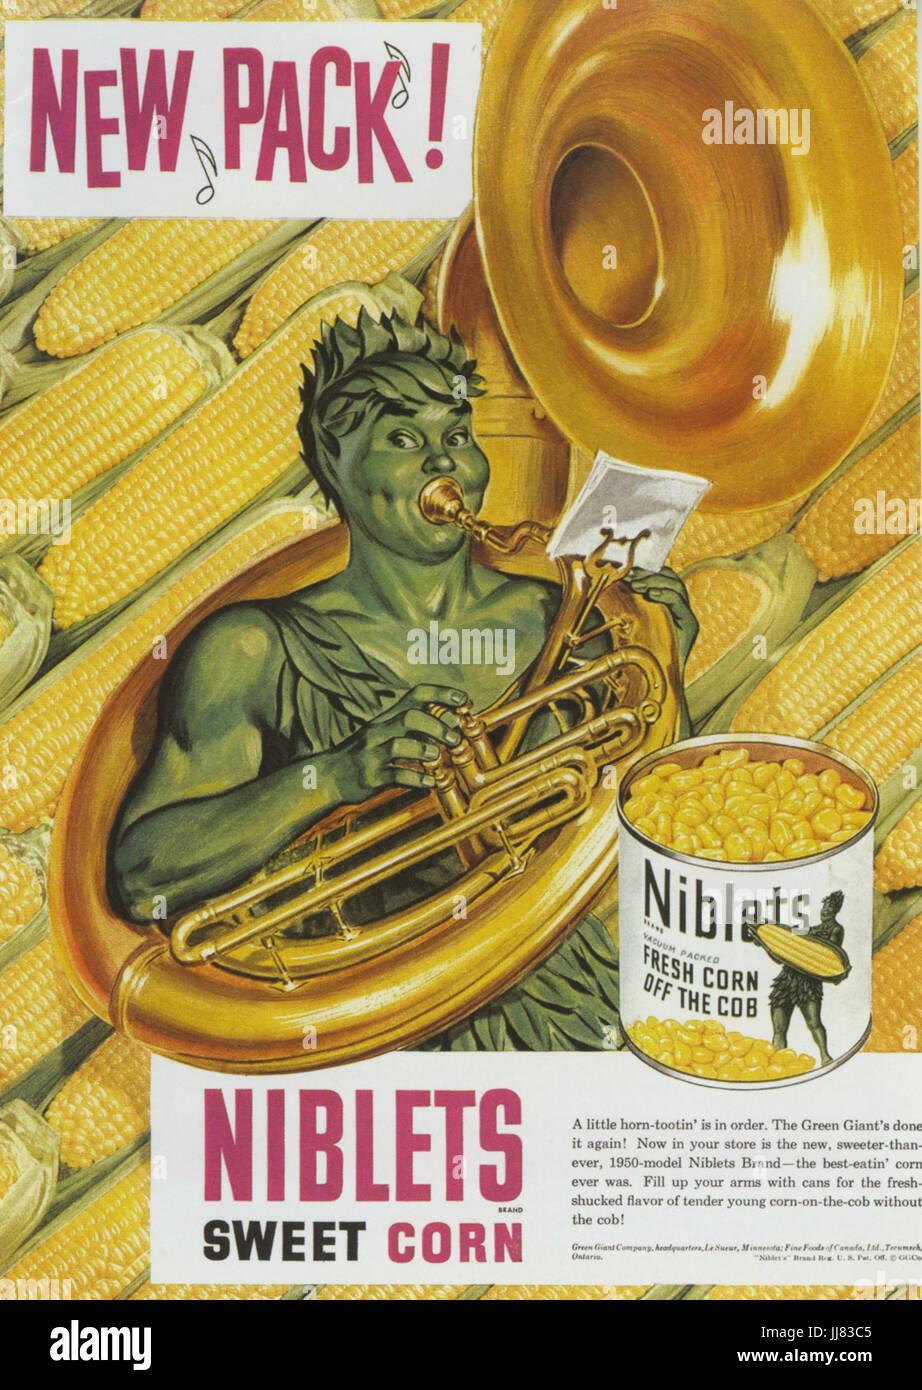 NIBLETS advert 1950 featuring the Jolly Green Giant - Stock Image